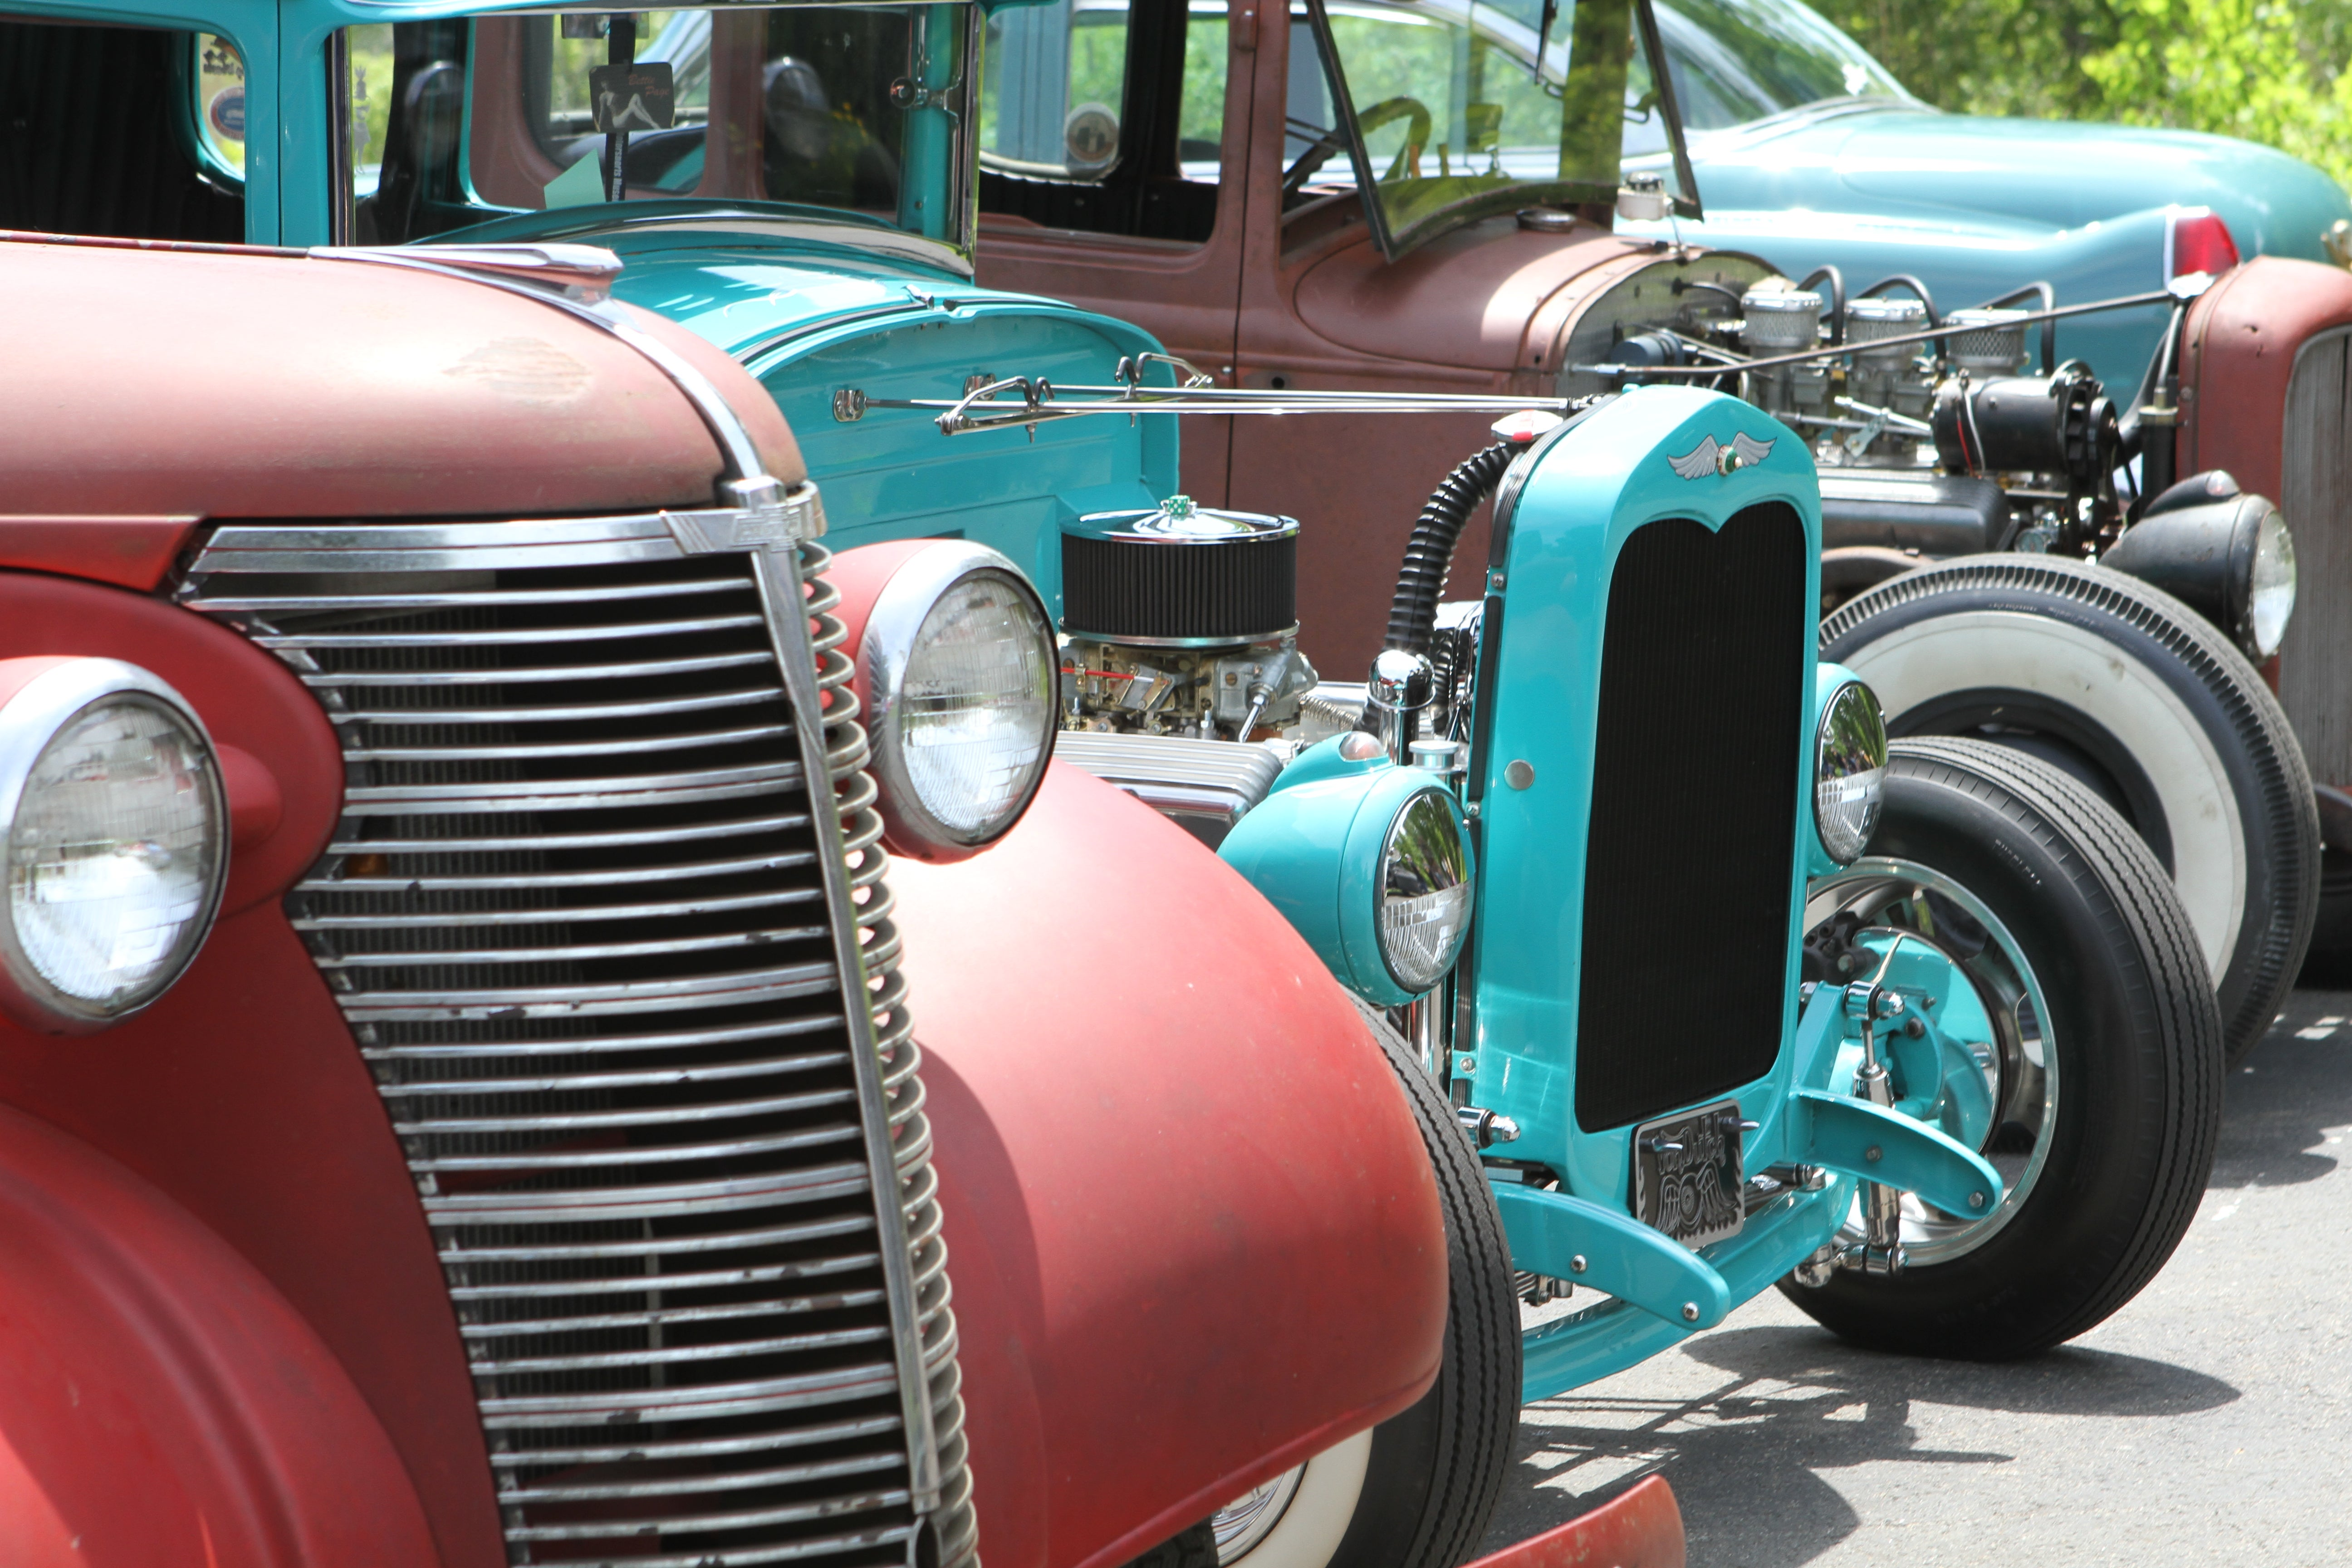 New England Car Shows Worth Checking Out While The Weather Is - Good guys car show rules